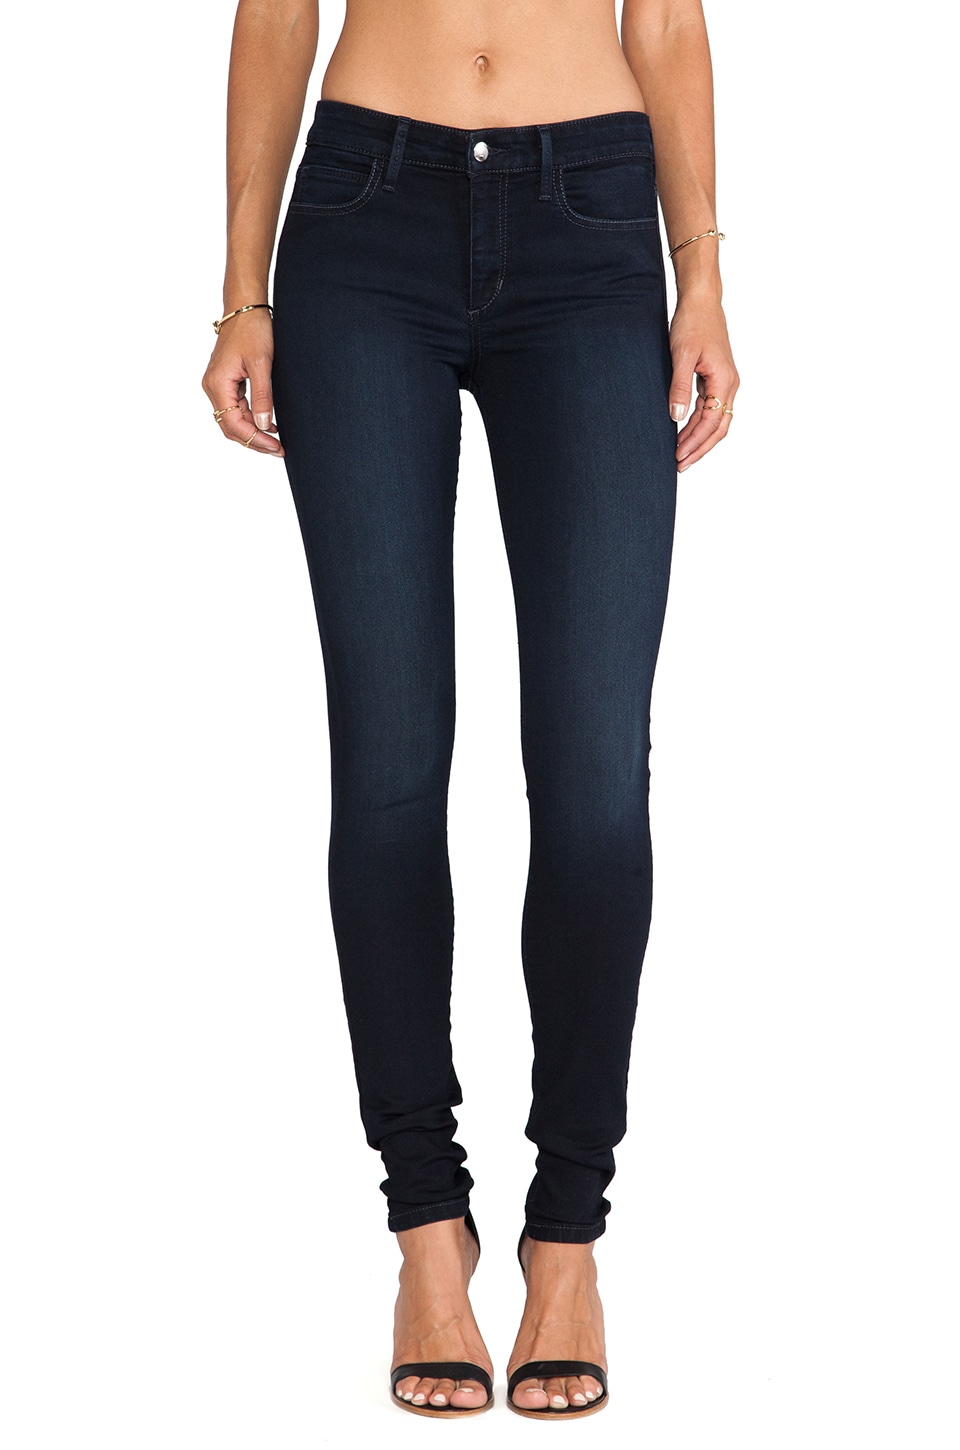 Joe's Jeans Mid Rise Legging in Piper